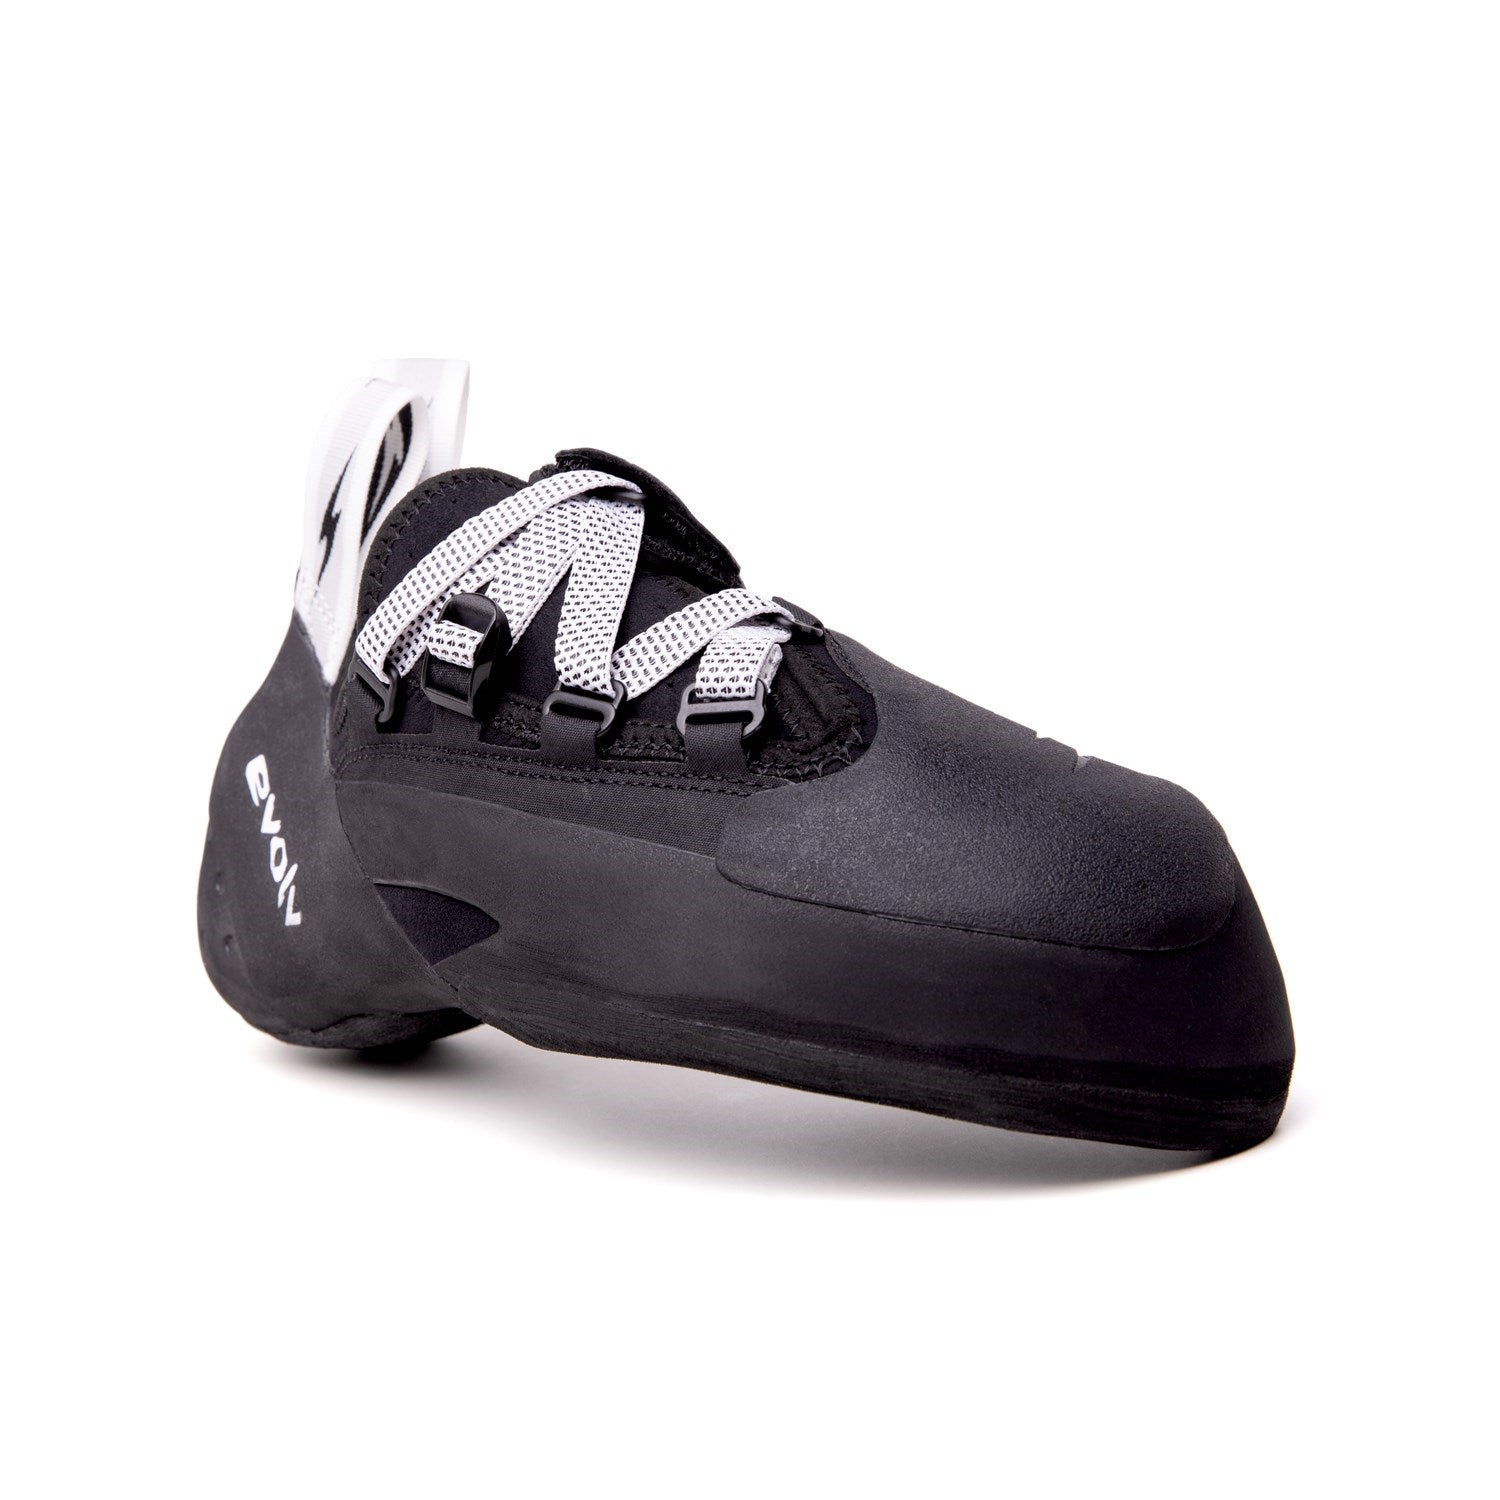 EVOLV Phantom Climbing Shoe